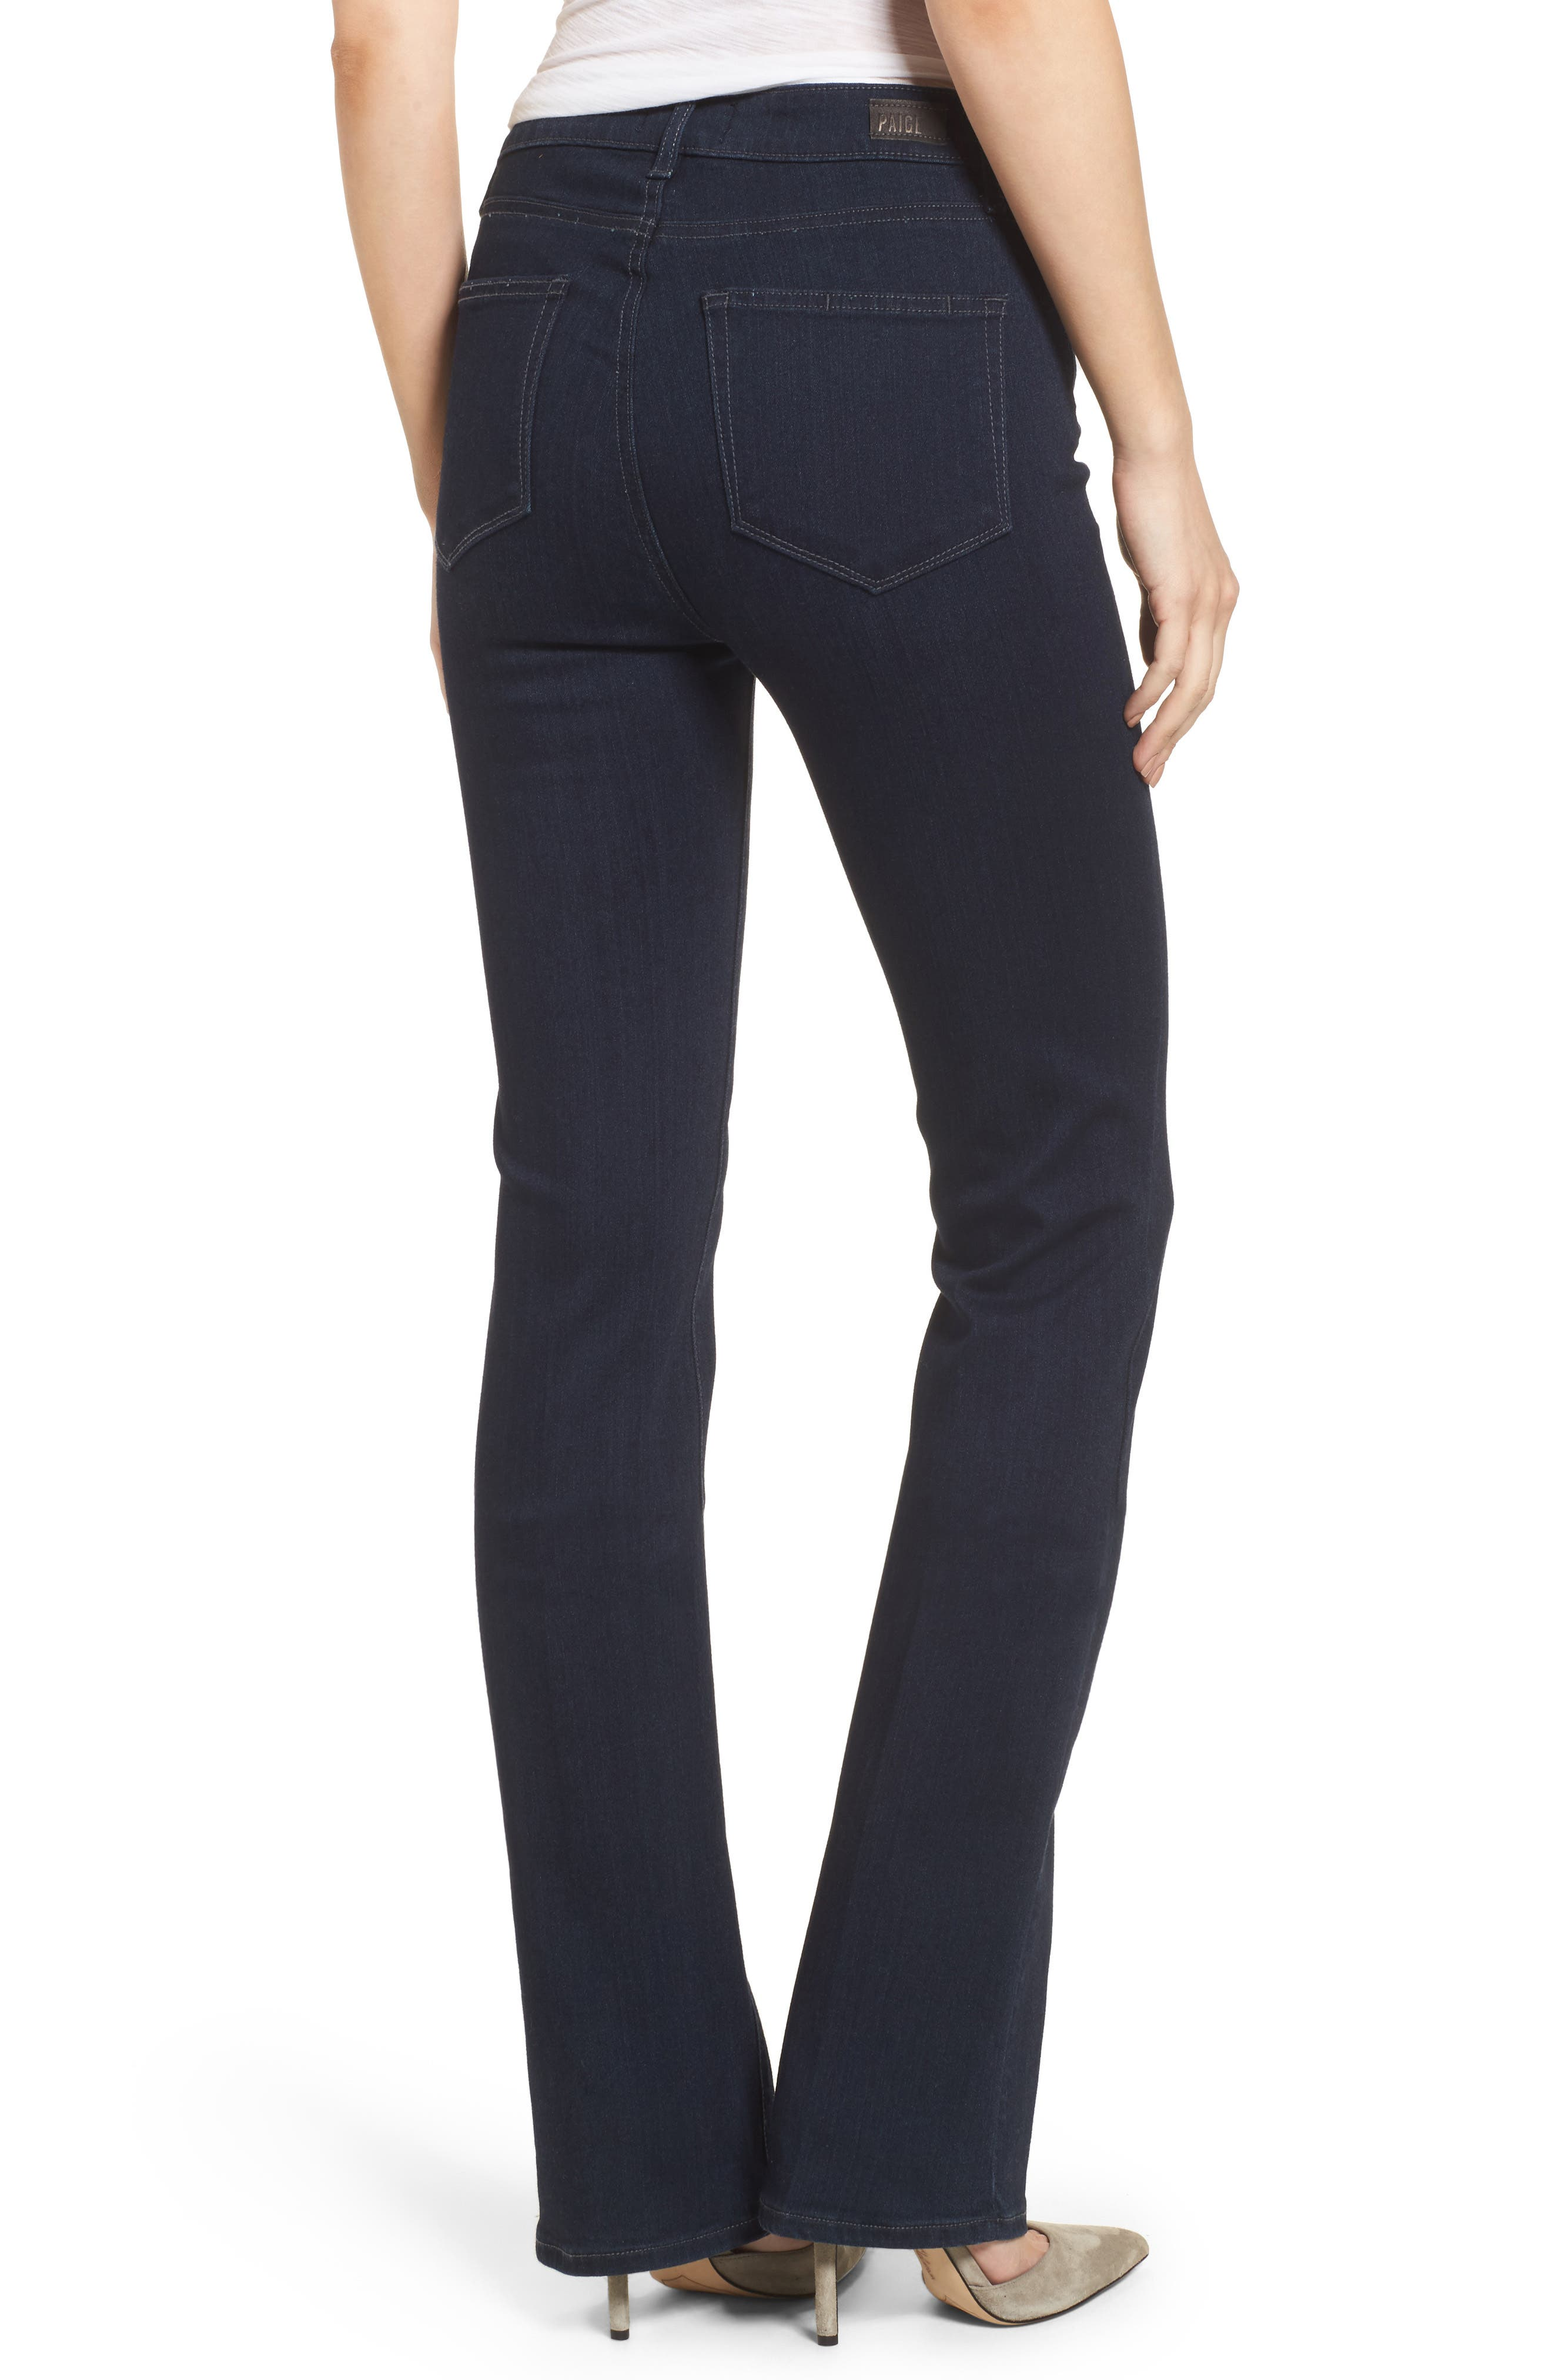 Transcend - Manhattan High Rise Bootcut Jeans,                             Alternate thumbnail 2, color,                             400